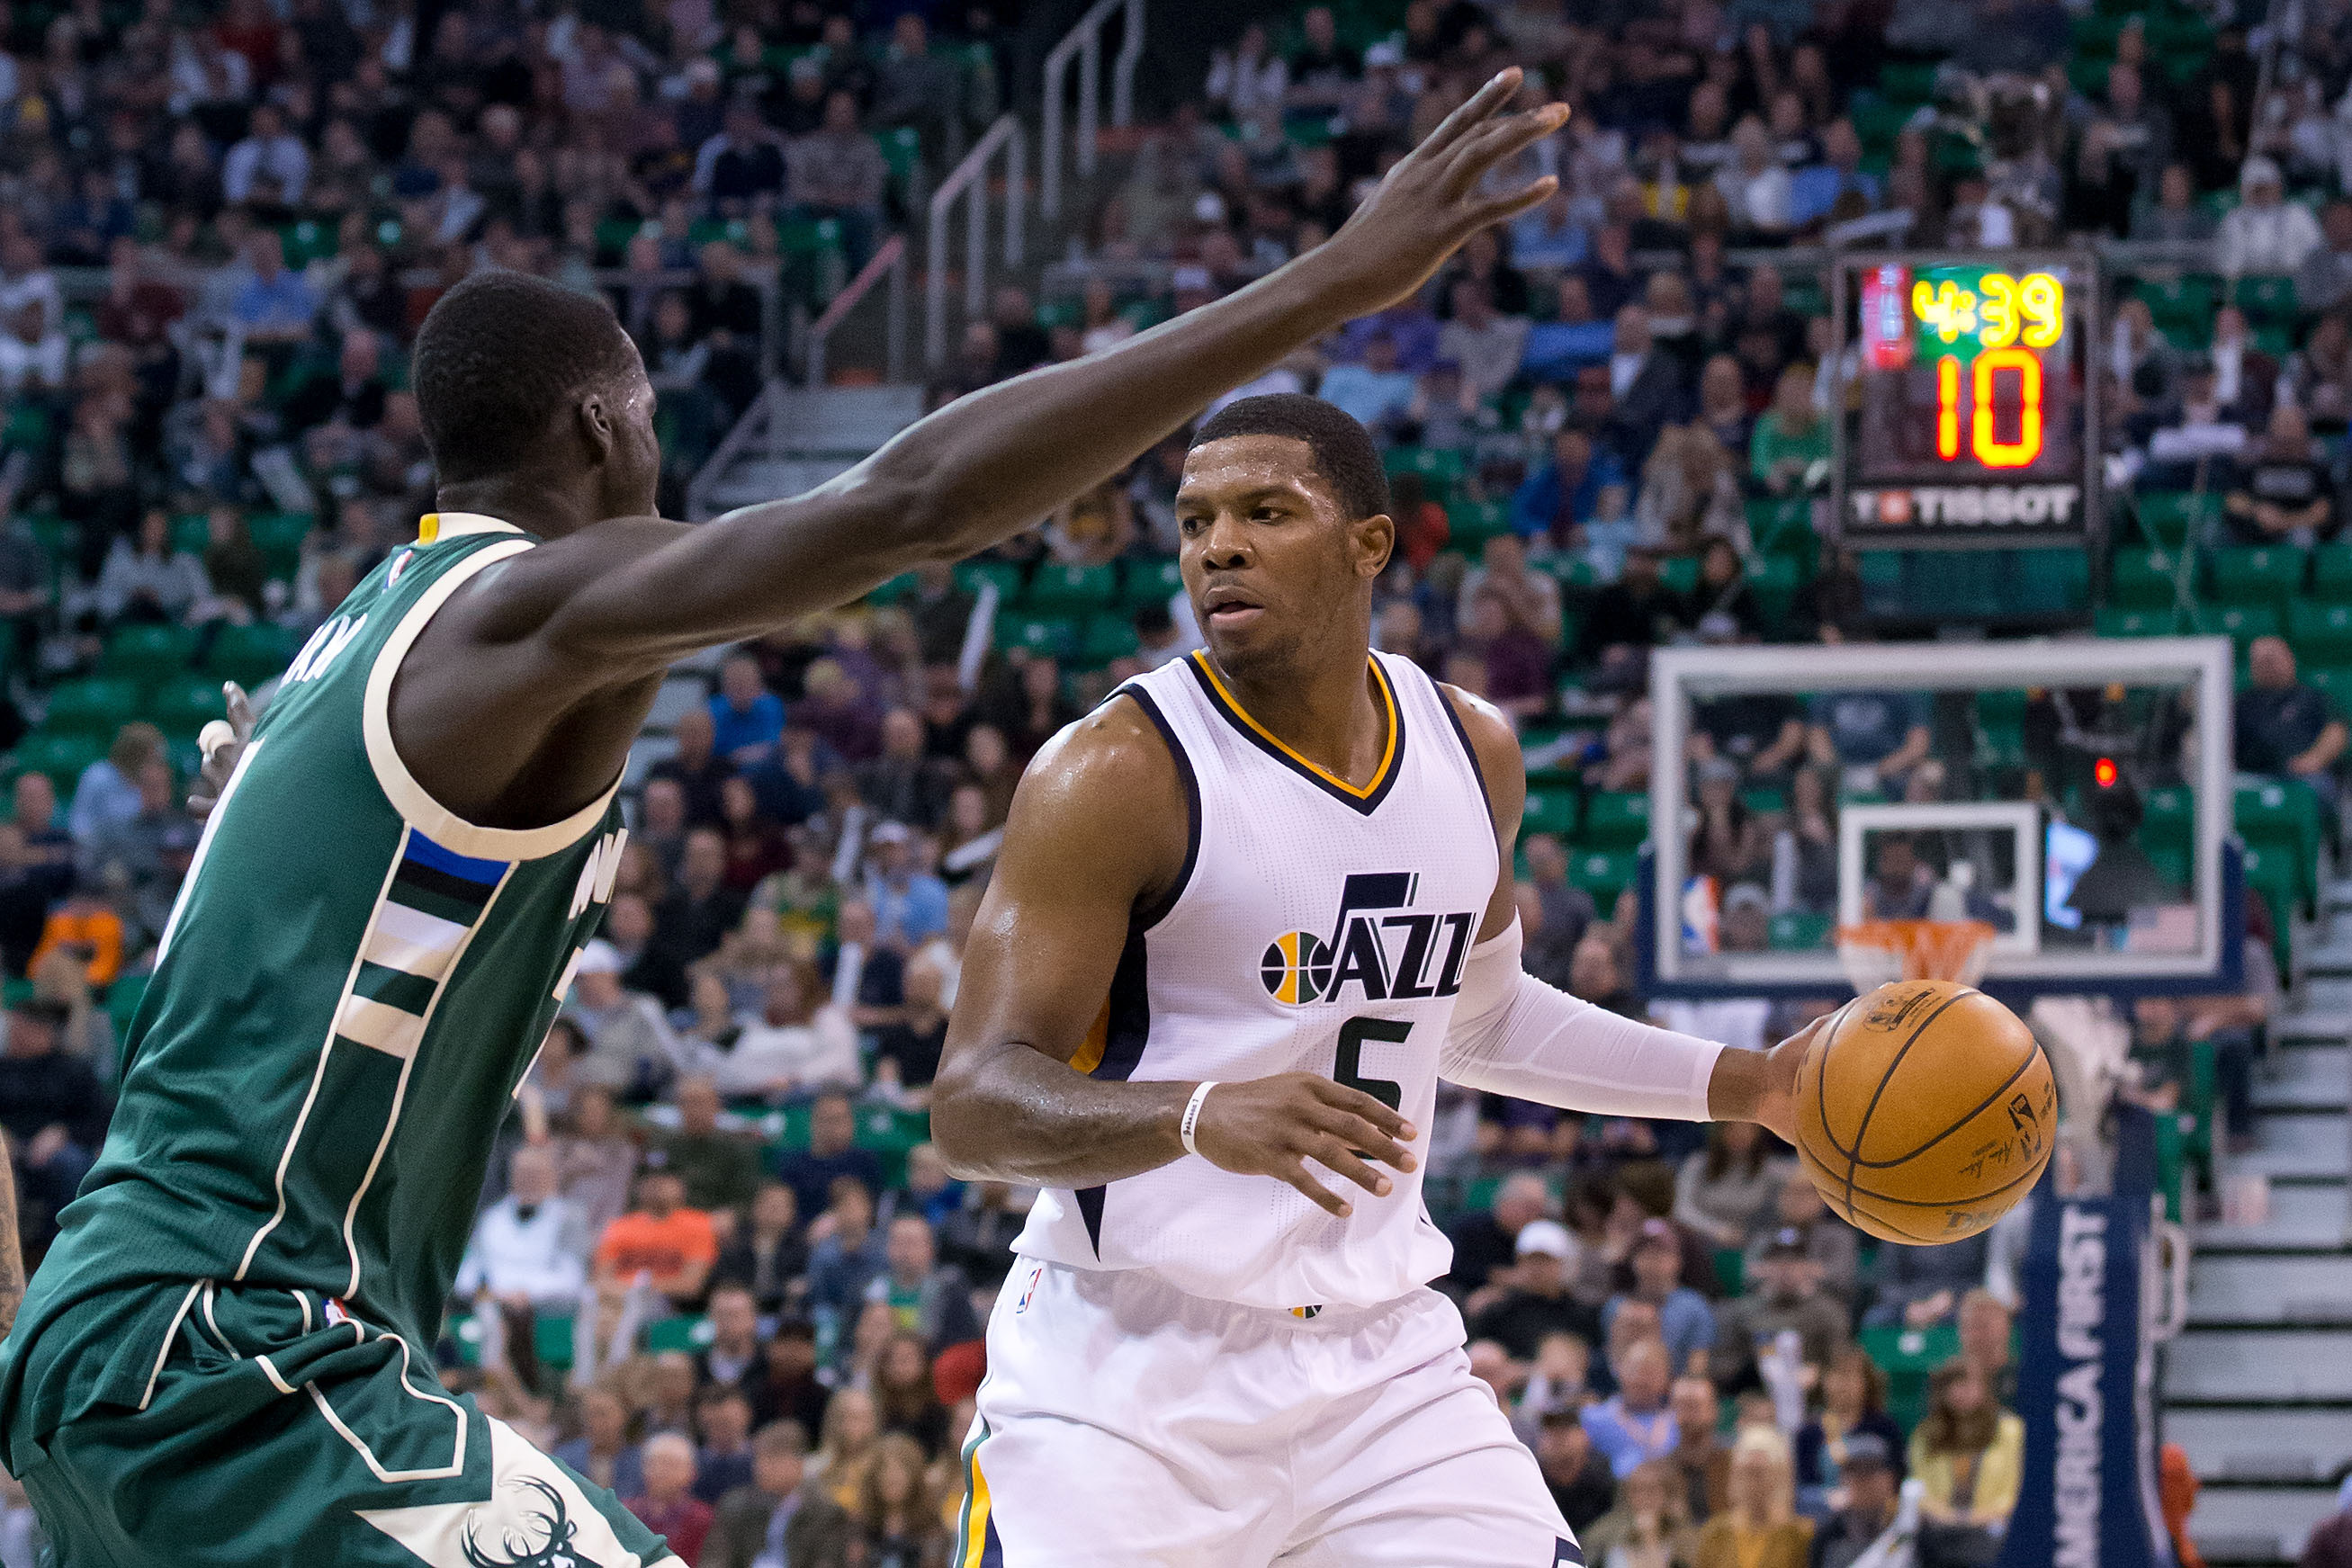 Feb 1, 2017; Salt Lake City, UT, USA; Utah Jazz forward Joe Johnson (6) dribbles the ball as Milwaukee Bucks forward Thon Maker (7) defends during the second half at Vivint Smart Home Arena. The Jazz won 104-88. Mandatory Credit: Russ Isabella-USA TODAY Sports